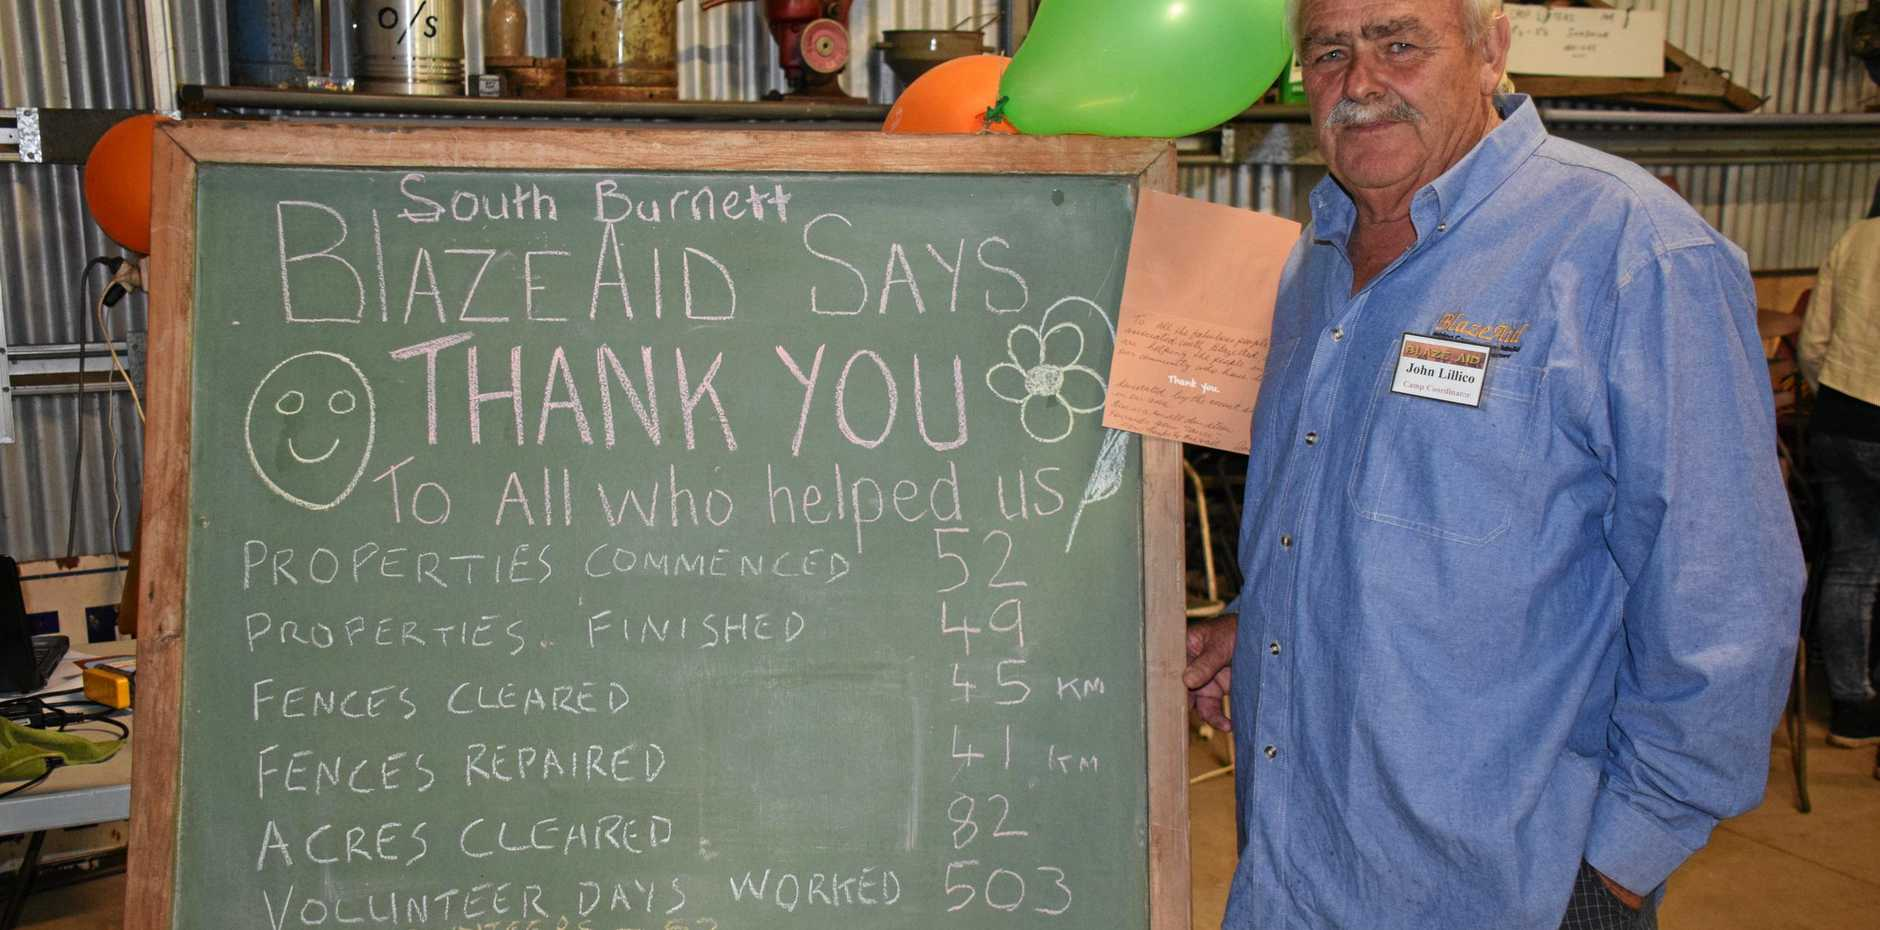 BY THE NUMBERS: BlazeAid coordinator John Lillico praised the great work of volunteers at the Thank You dinner.